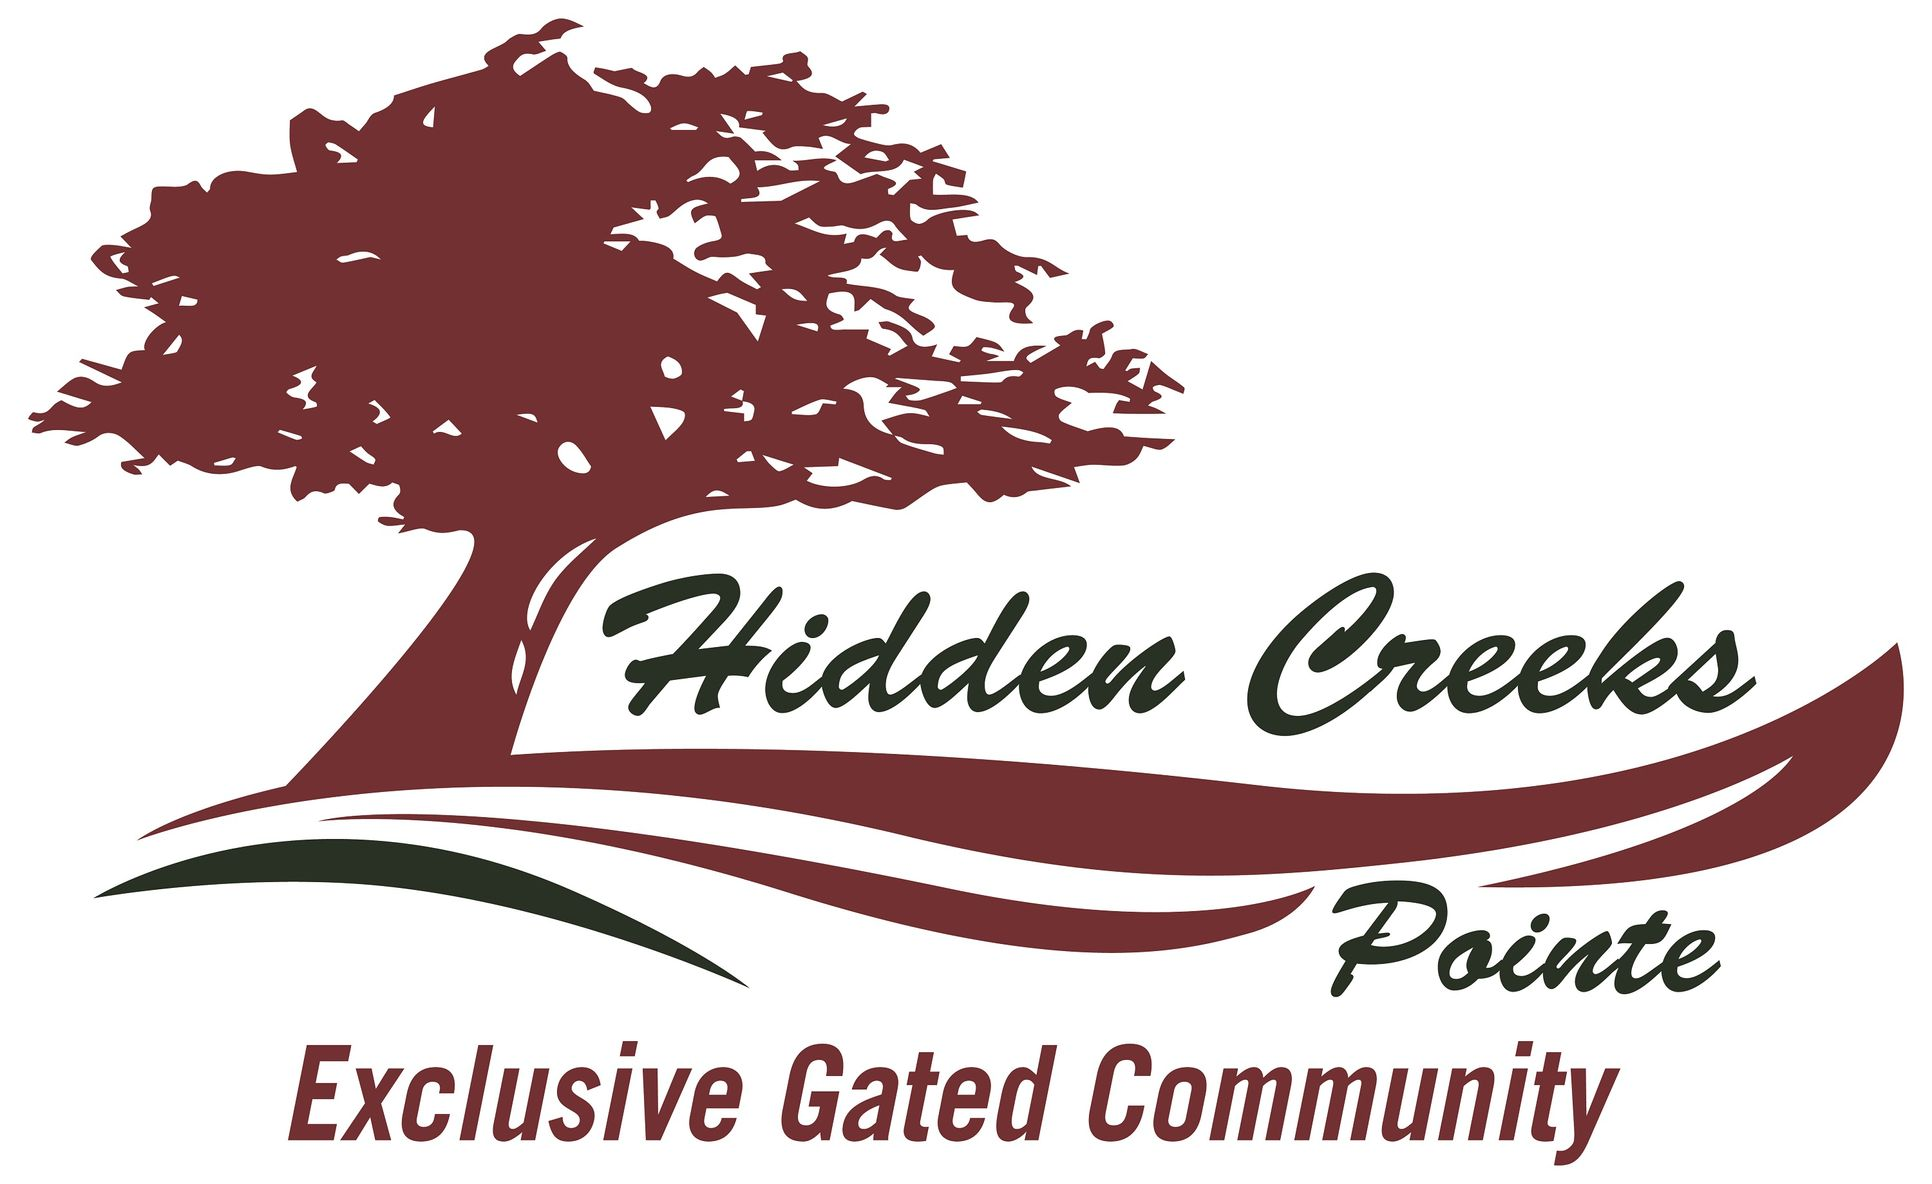 Hidden Creeks Pointe,75009